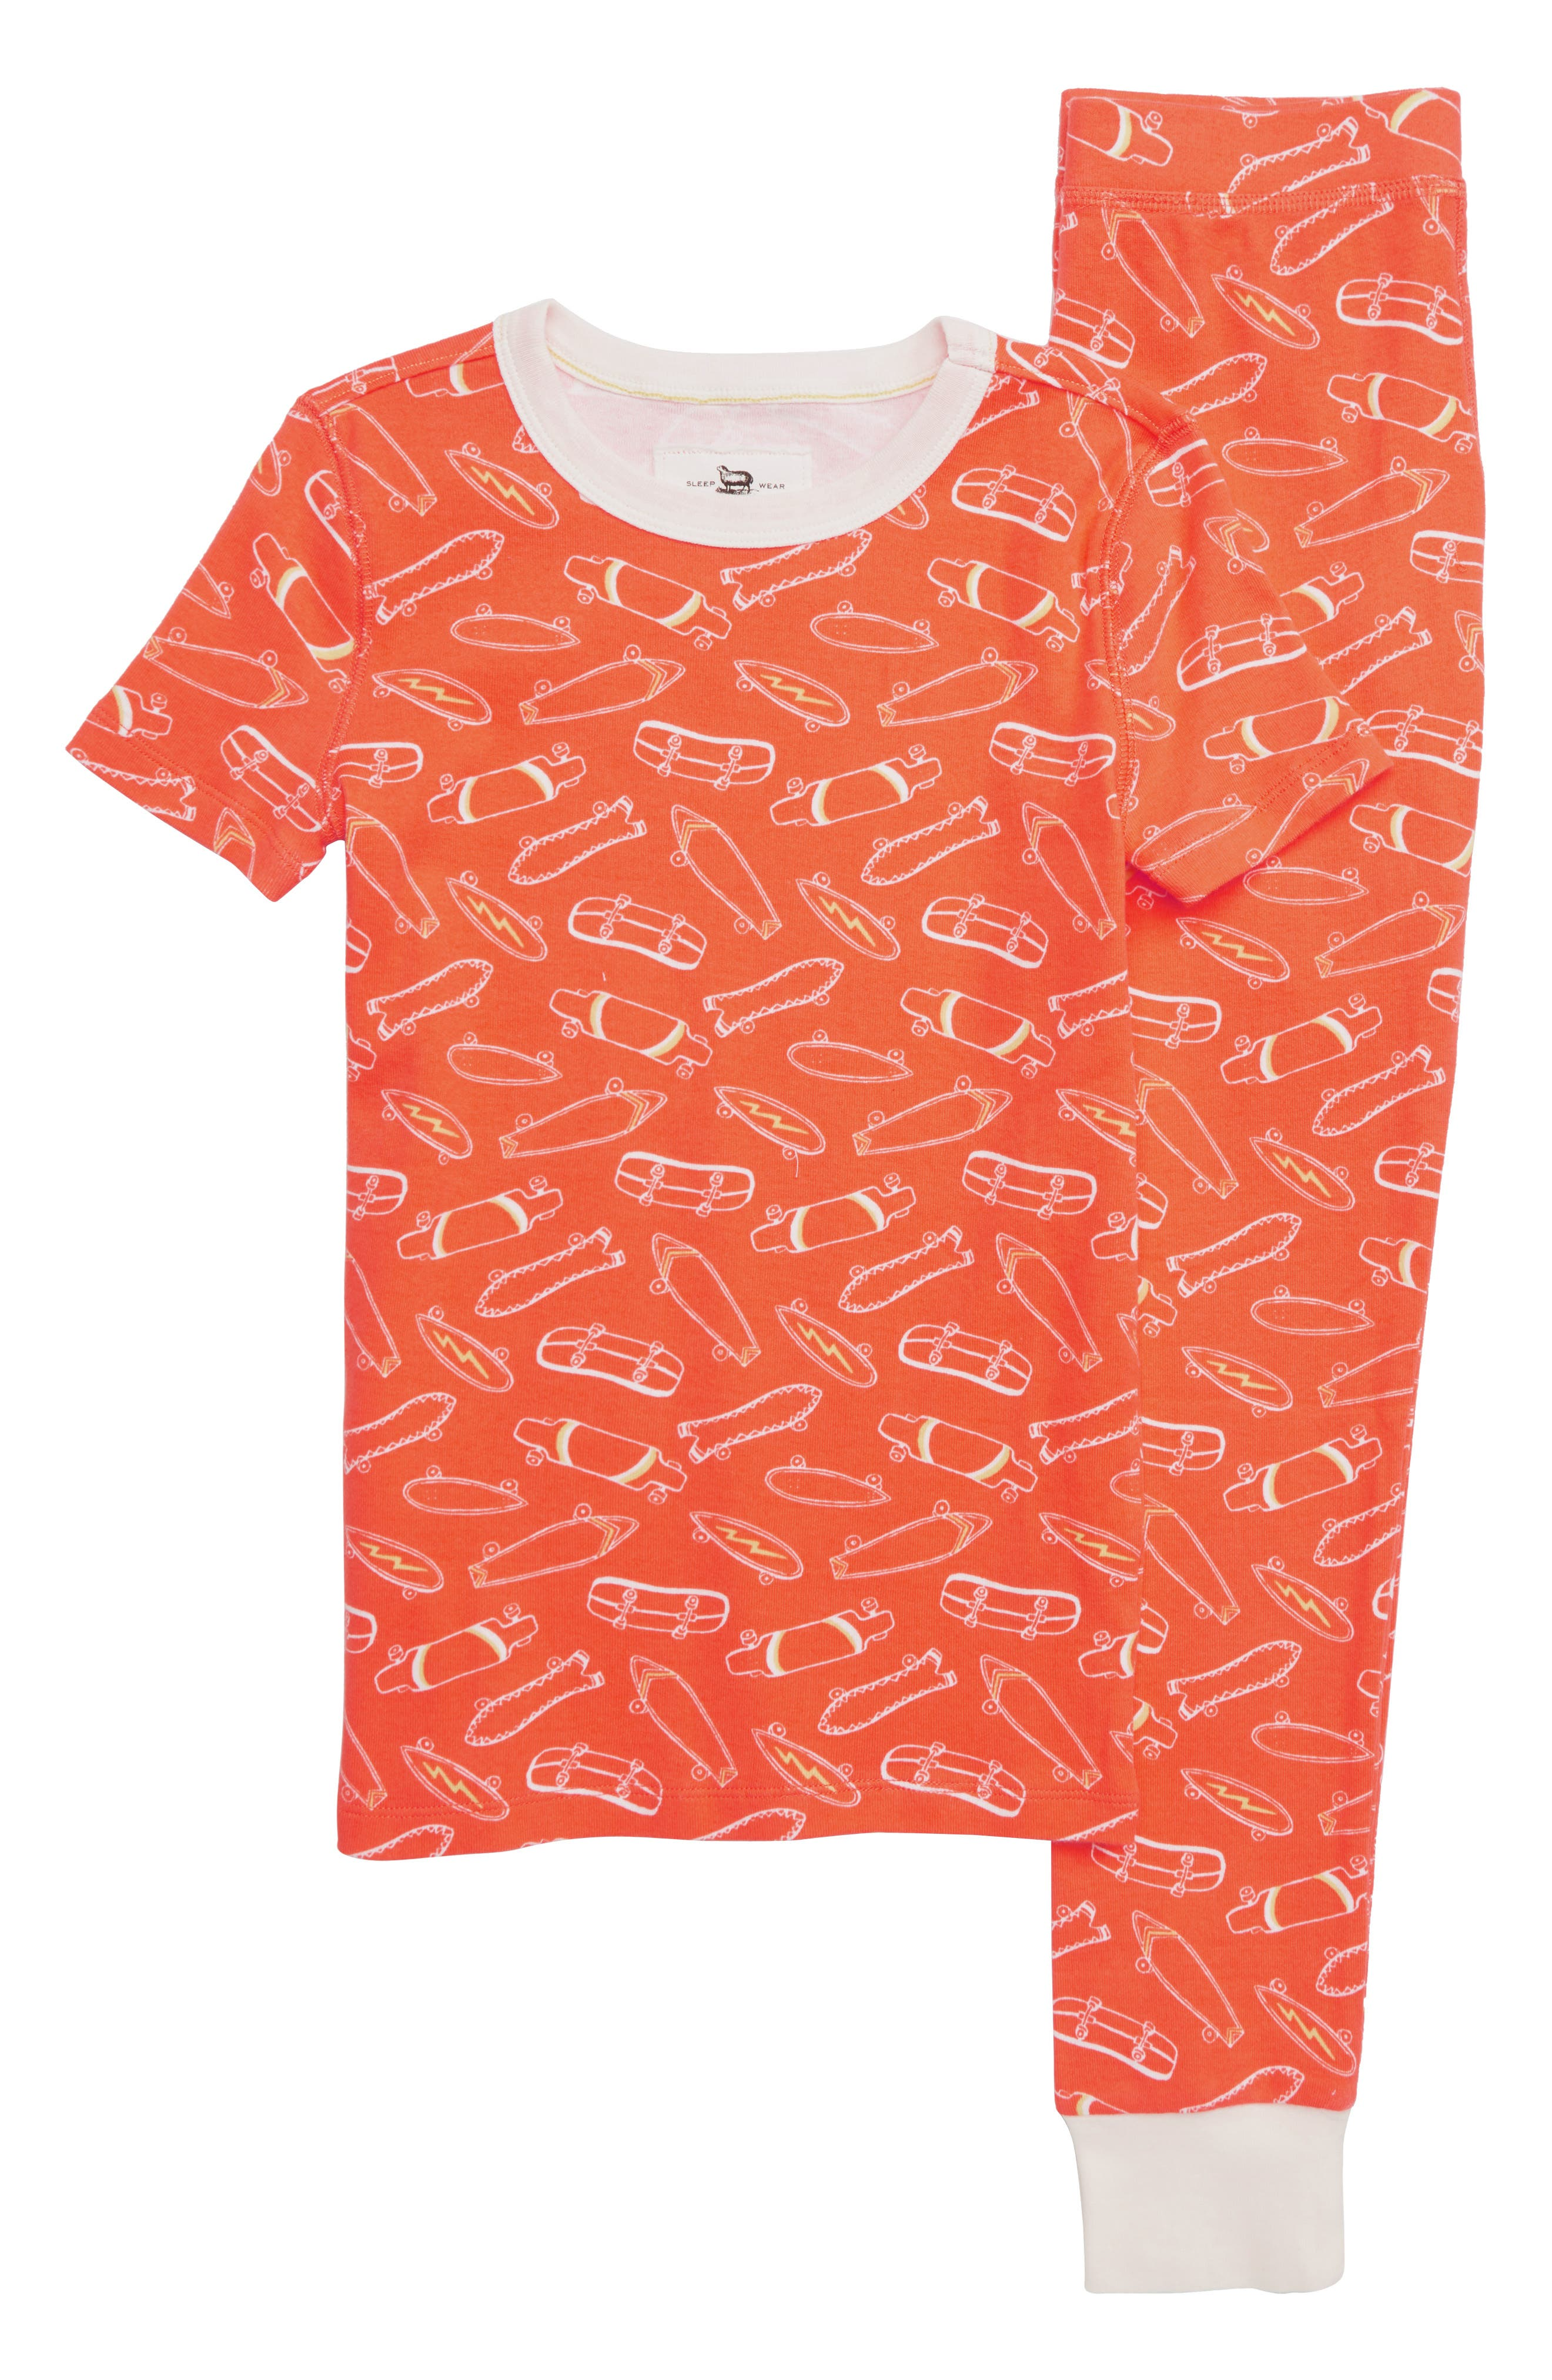 CREWCUTS BY J.CREW,                             Skateboards Fitted Two-Piece Pajamas,                             Main thumbnail 1, color,                             ORANGE IVORY MULTI